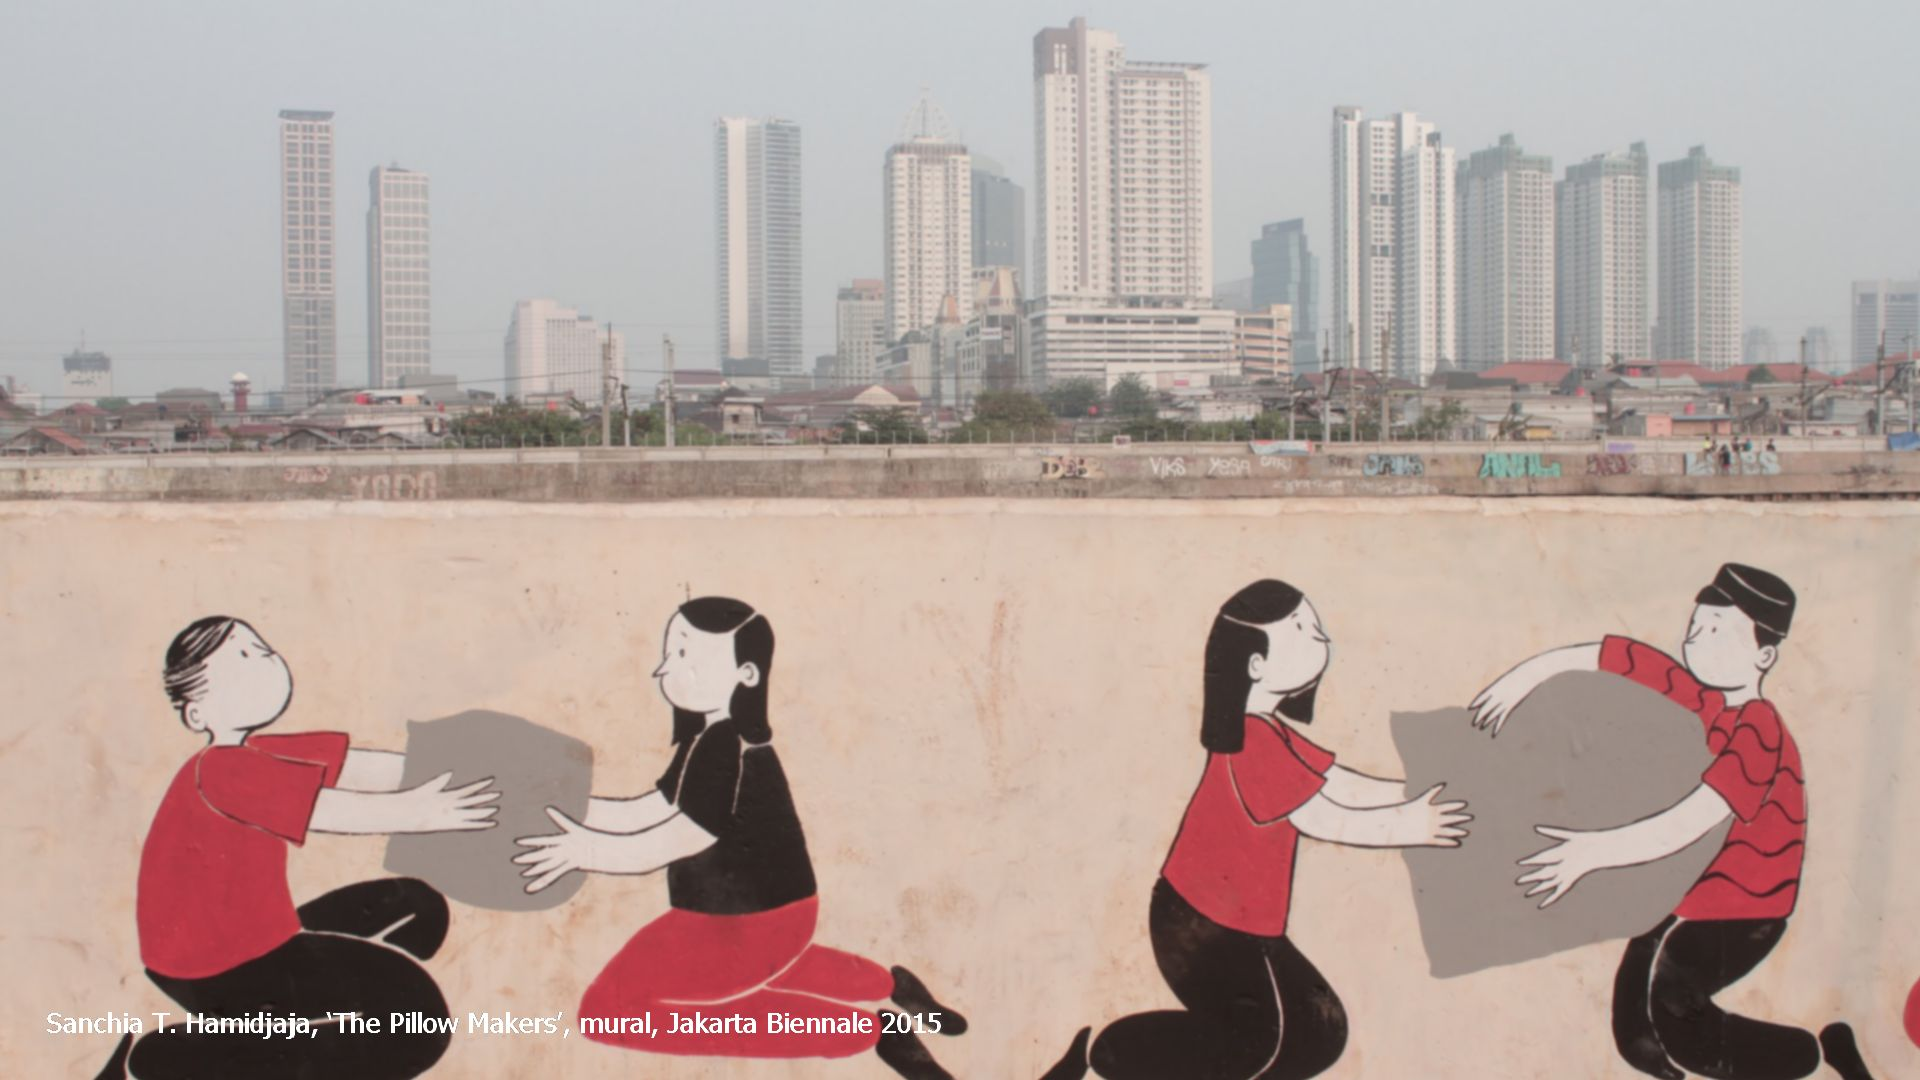 Sanchia T. Hamidjaja, 'The Pillow Makers', mural, Jakarta Biennale 2015